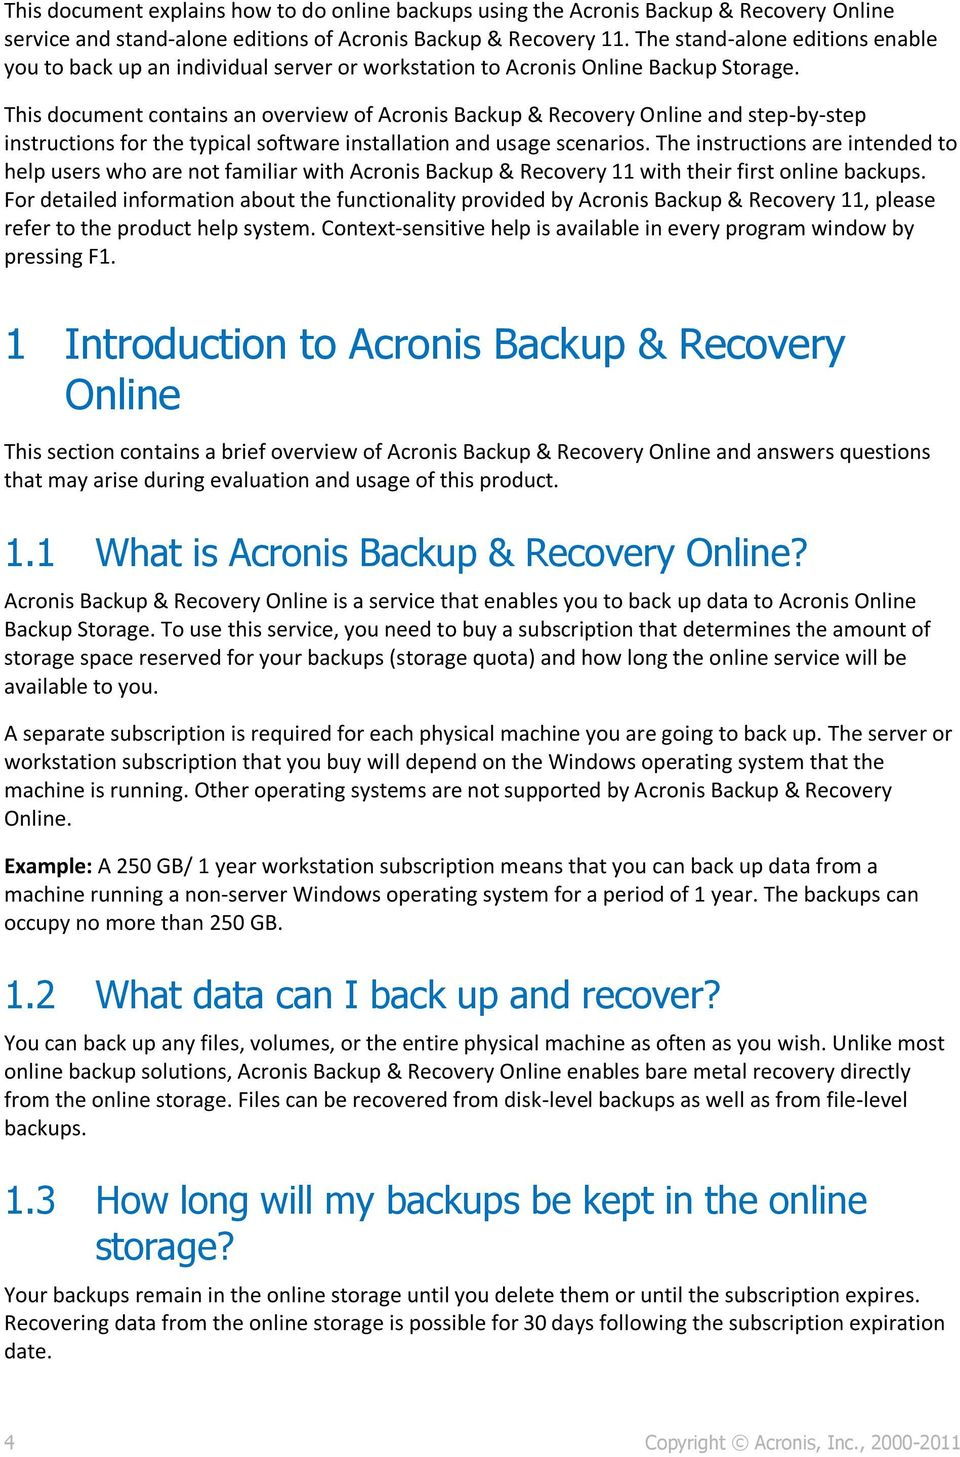 This document contains an overview of Acronis Backup & Recovery Online and step-by-step instructions for the typical software installation and usage scenarios.